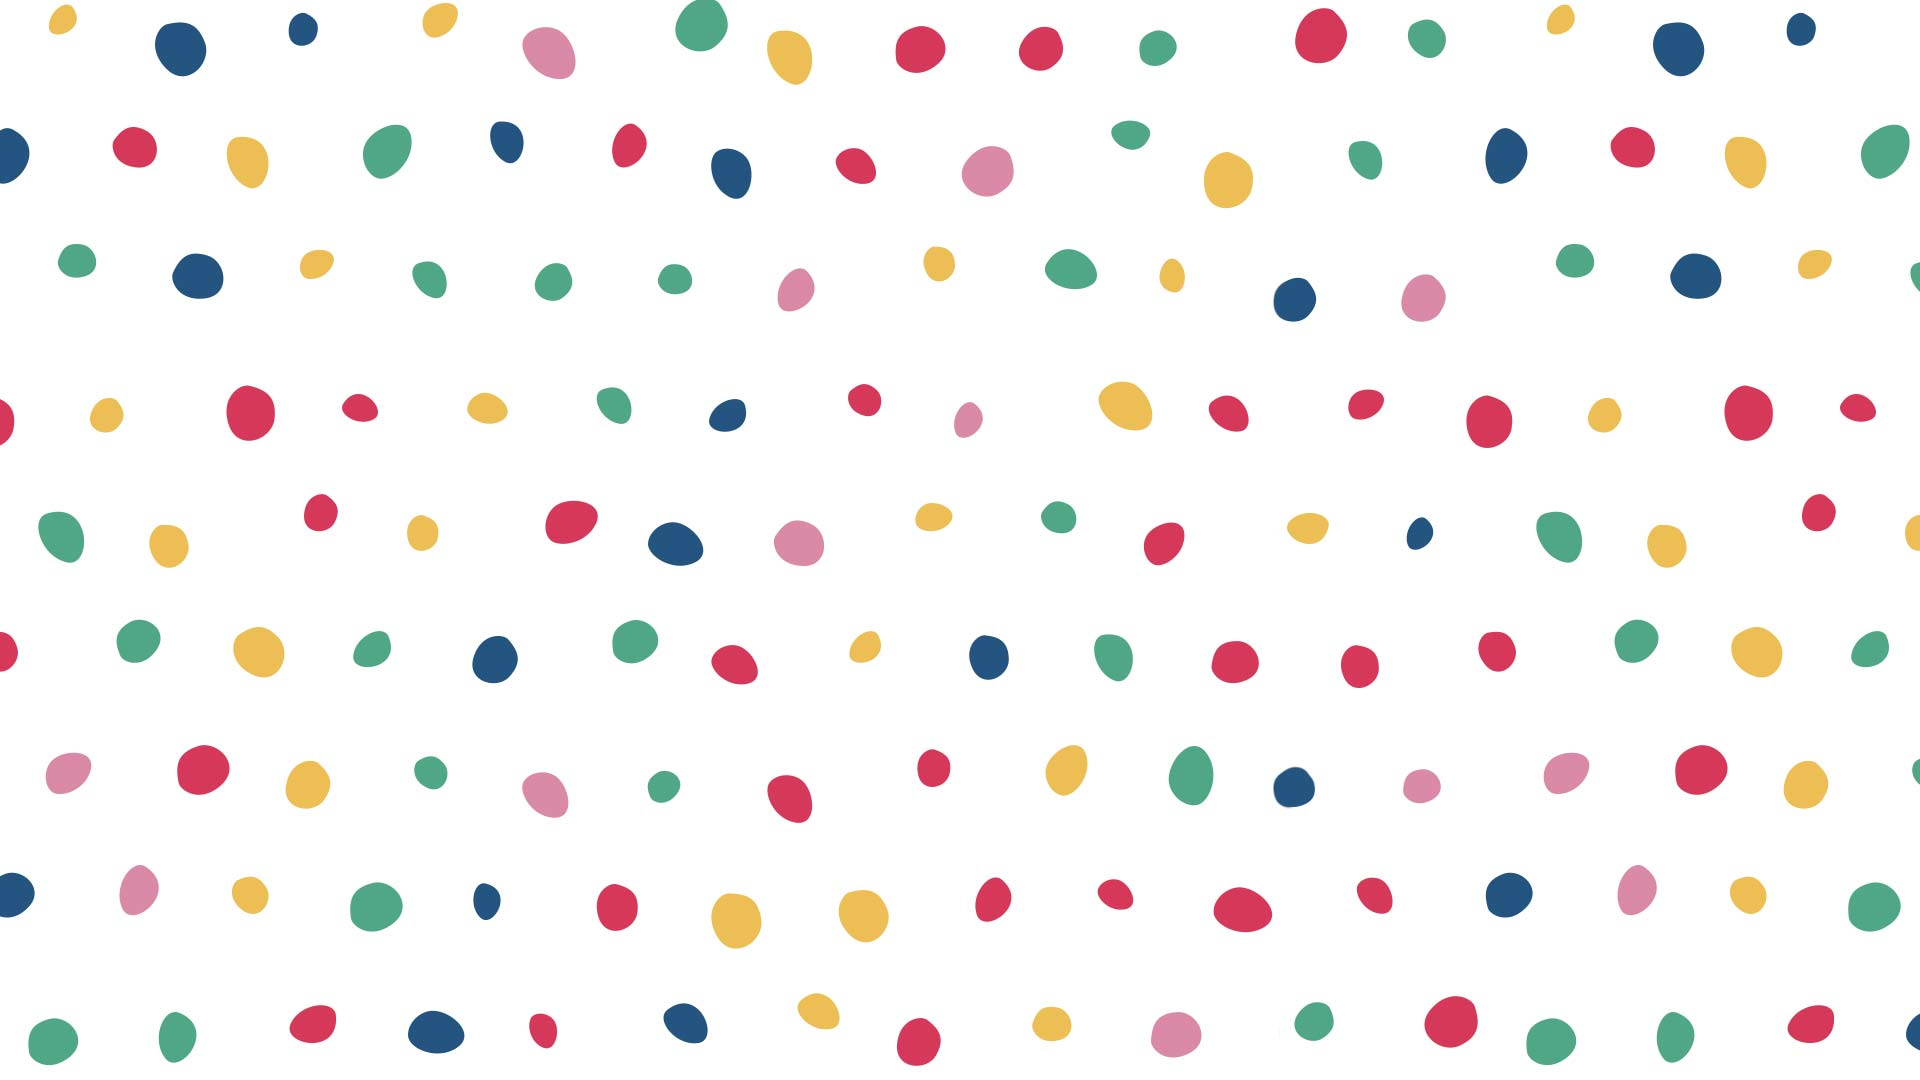 A background image with spots in lots of different colors